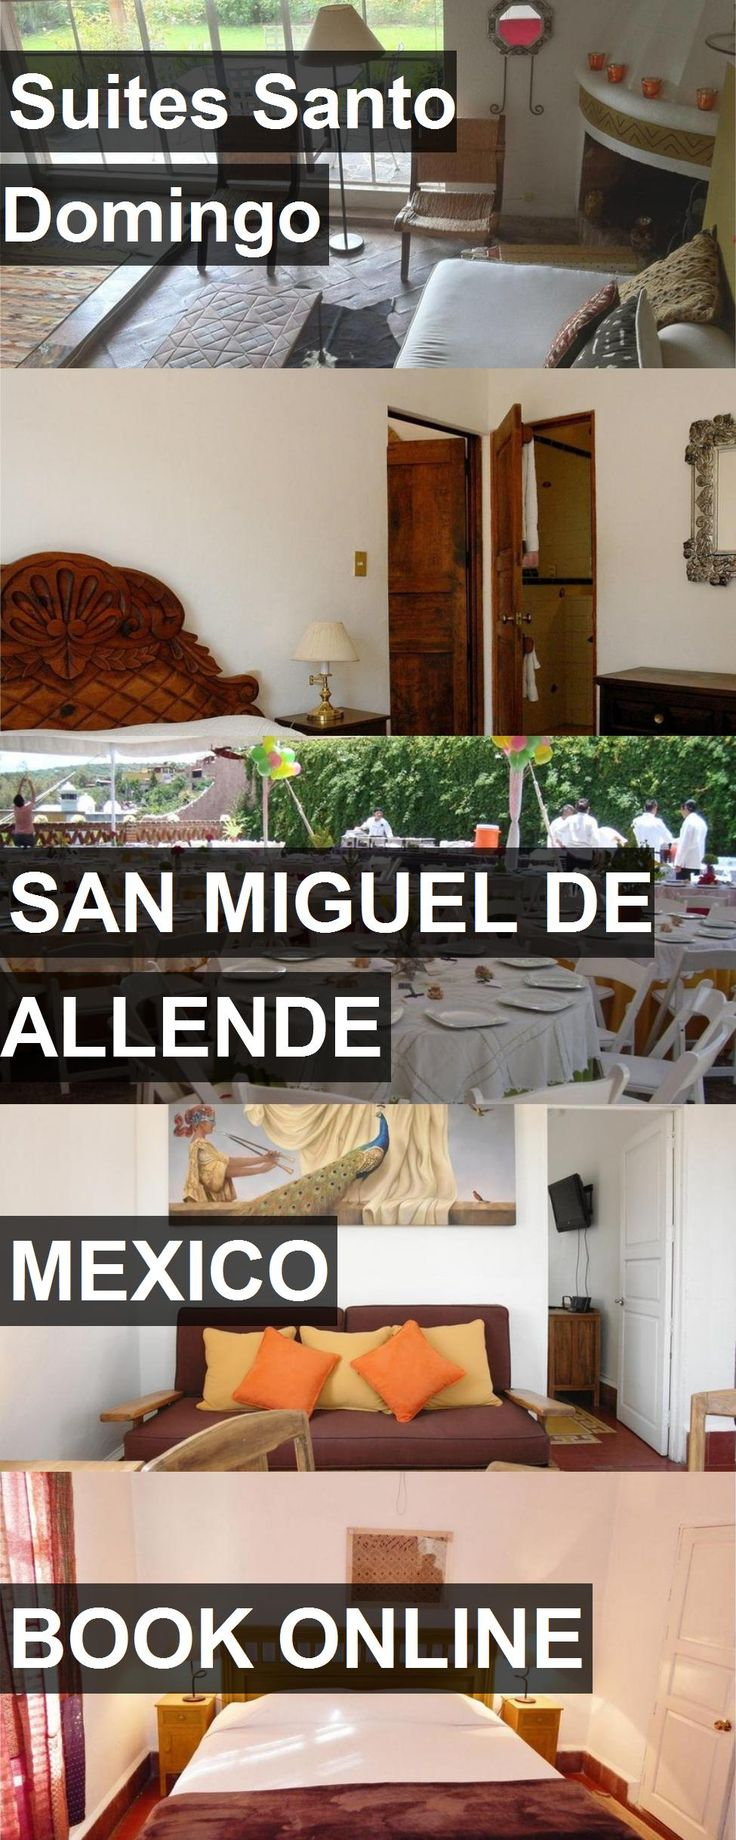 Hotel Suites Santo Domingo in San Miguel De Allende, Mexico. For more information, photos, reviews and best prices please follow the link. #Mexico #SanMiguelDeAllende #travel #vacation #hotel